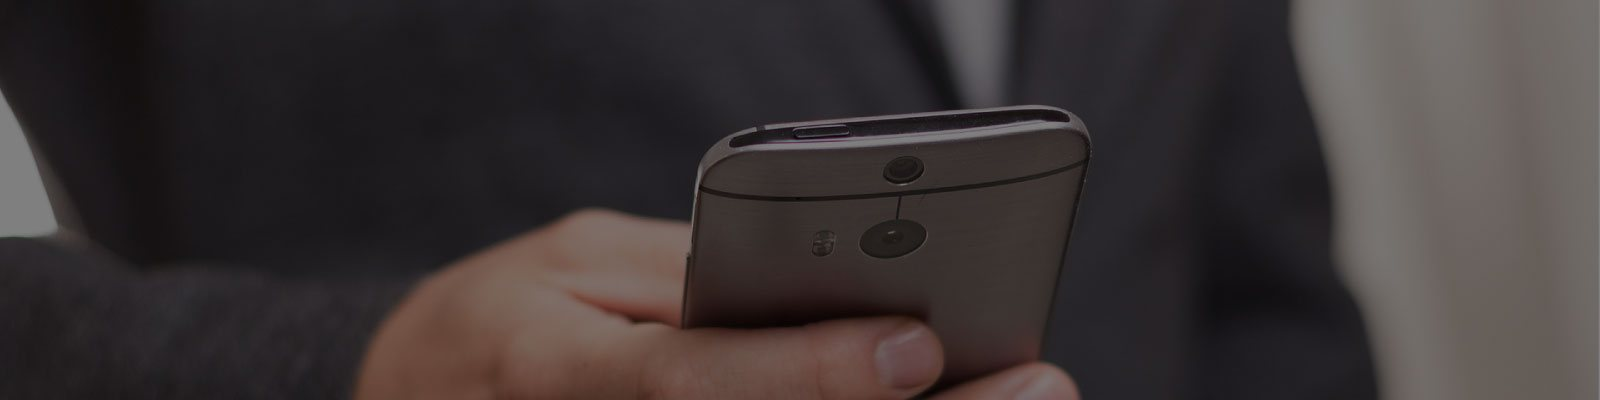 man using hosted pbx app on a grey smartphone